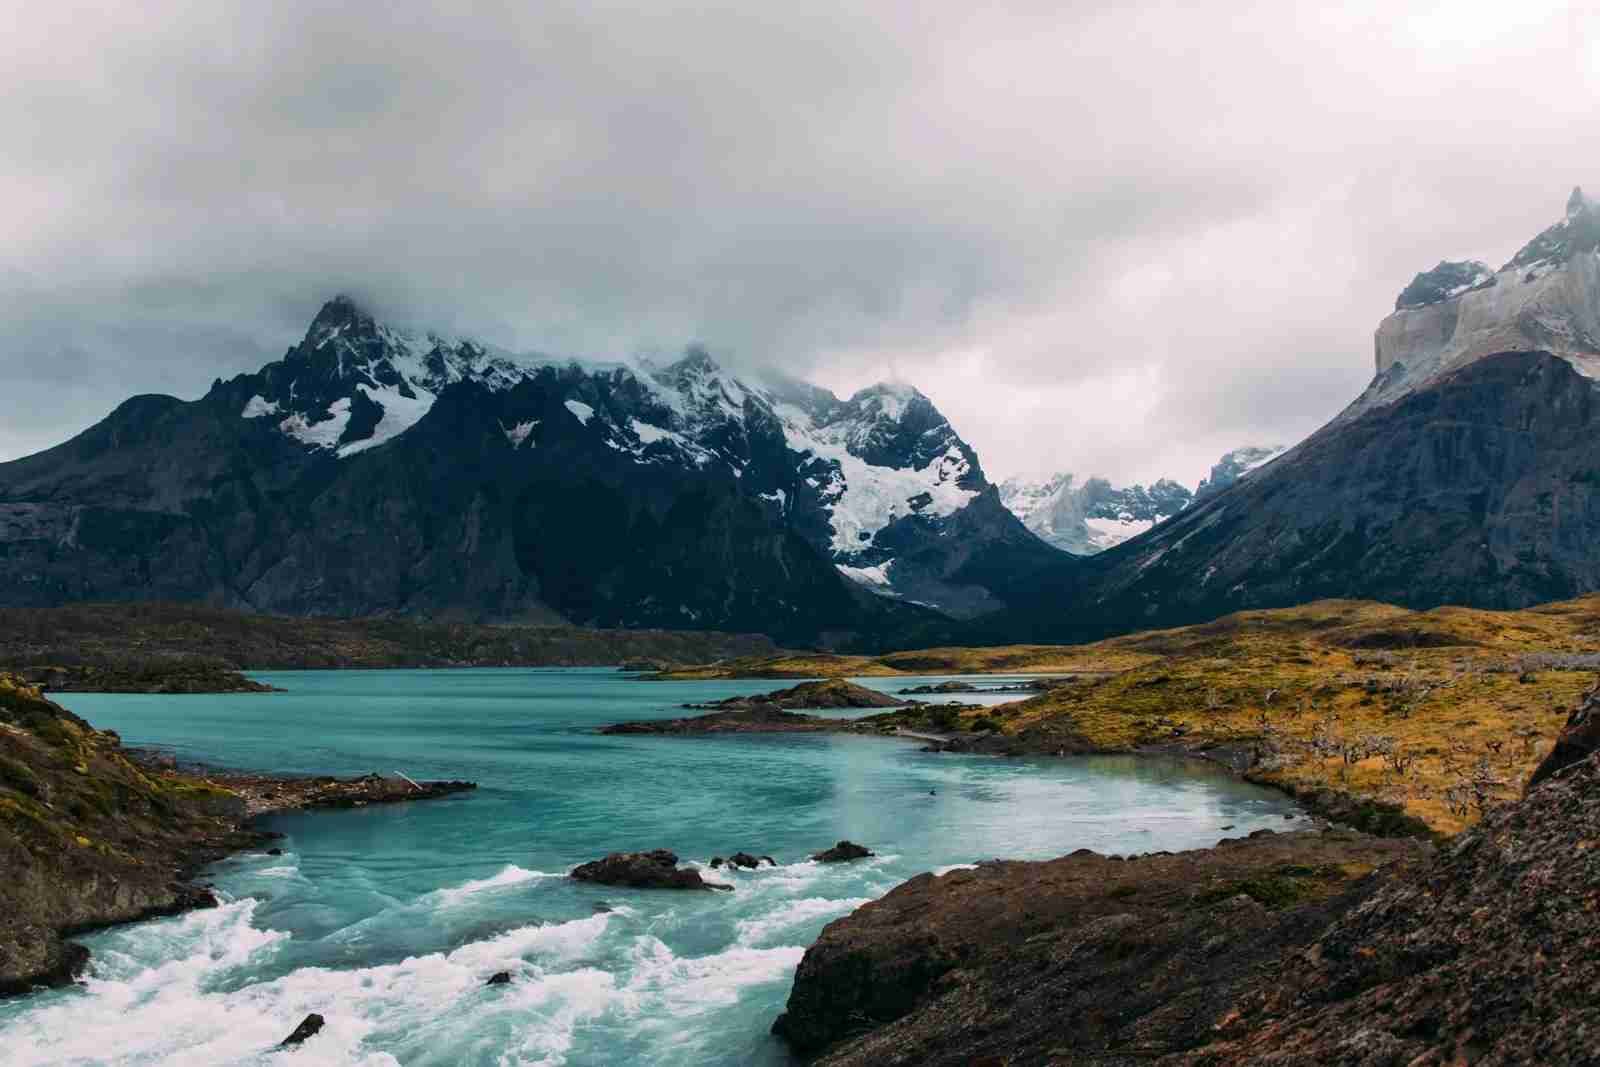 Argentine Patagonia. (Photo by Diego Jimenez / Unsplash)